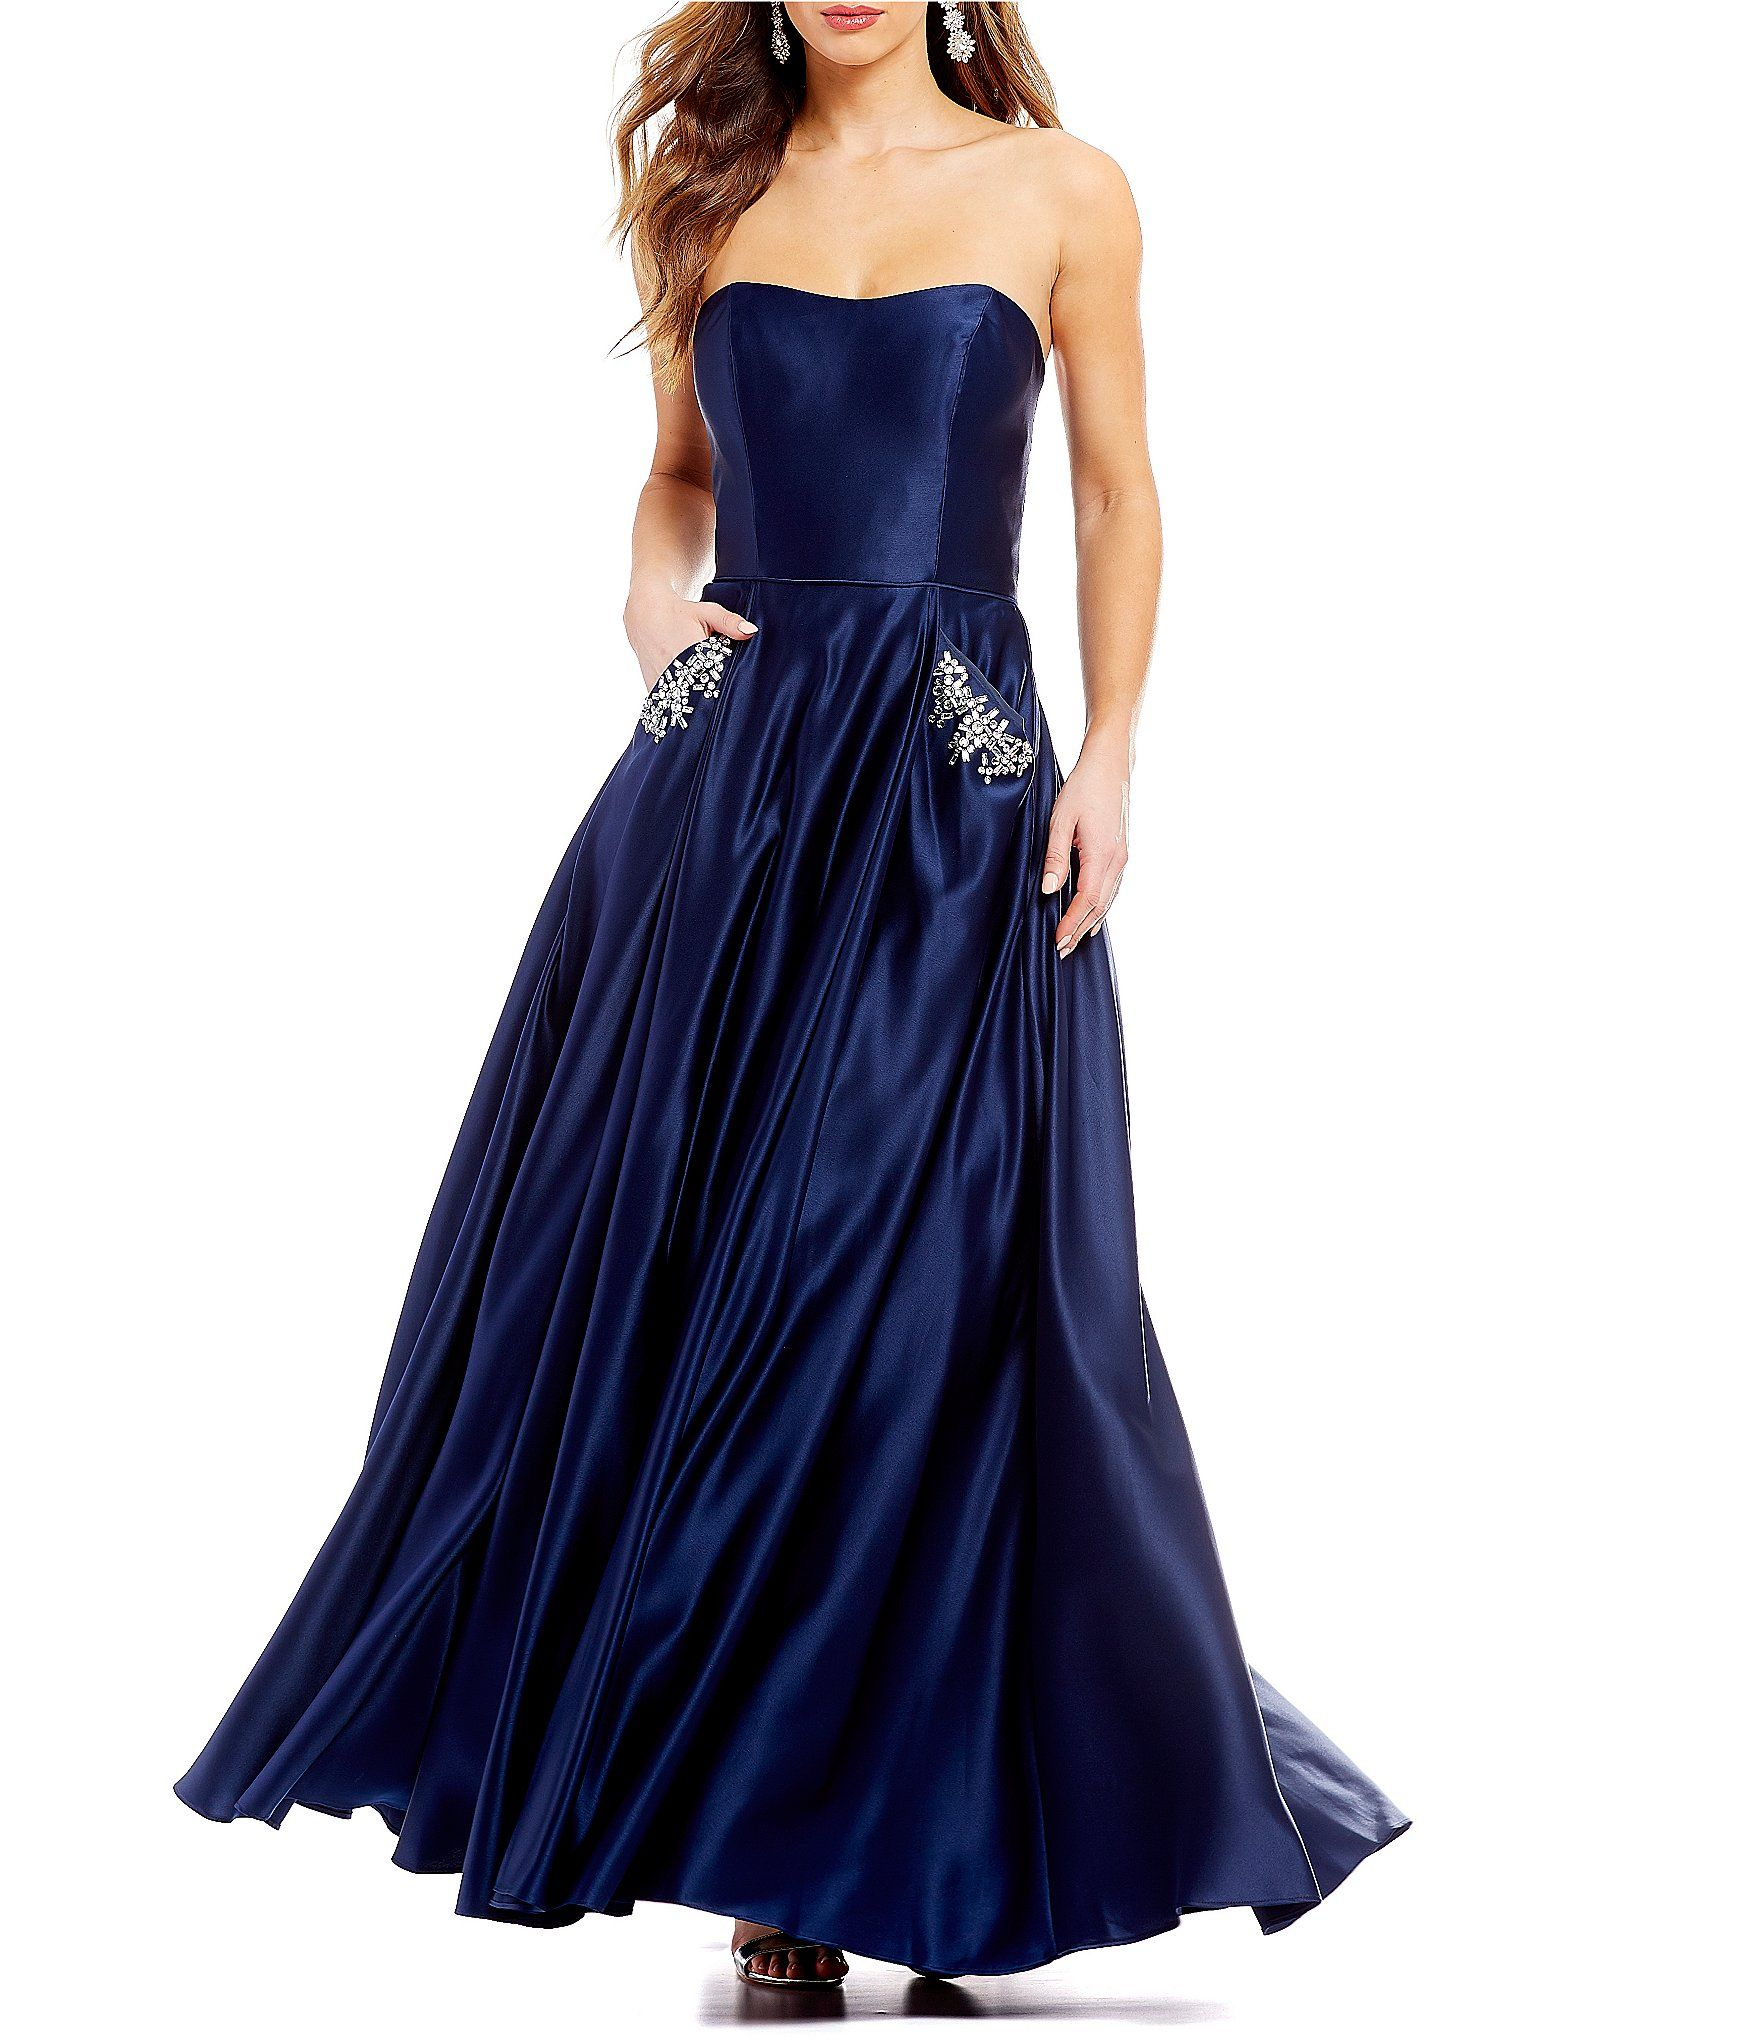 7ae5e20206f28 Shop for Blondie Nites Strapless Beaded-Pocket Satin Ball Gown at  Dillards.com. Visit Dillards.com to find clothing, accessories, shoes,  cosmetics & more.